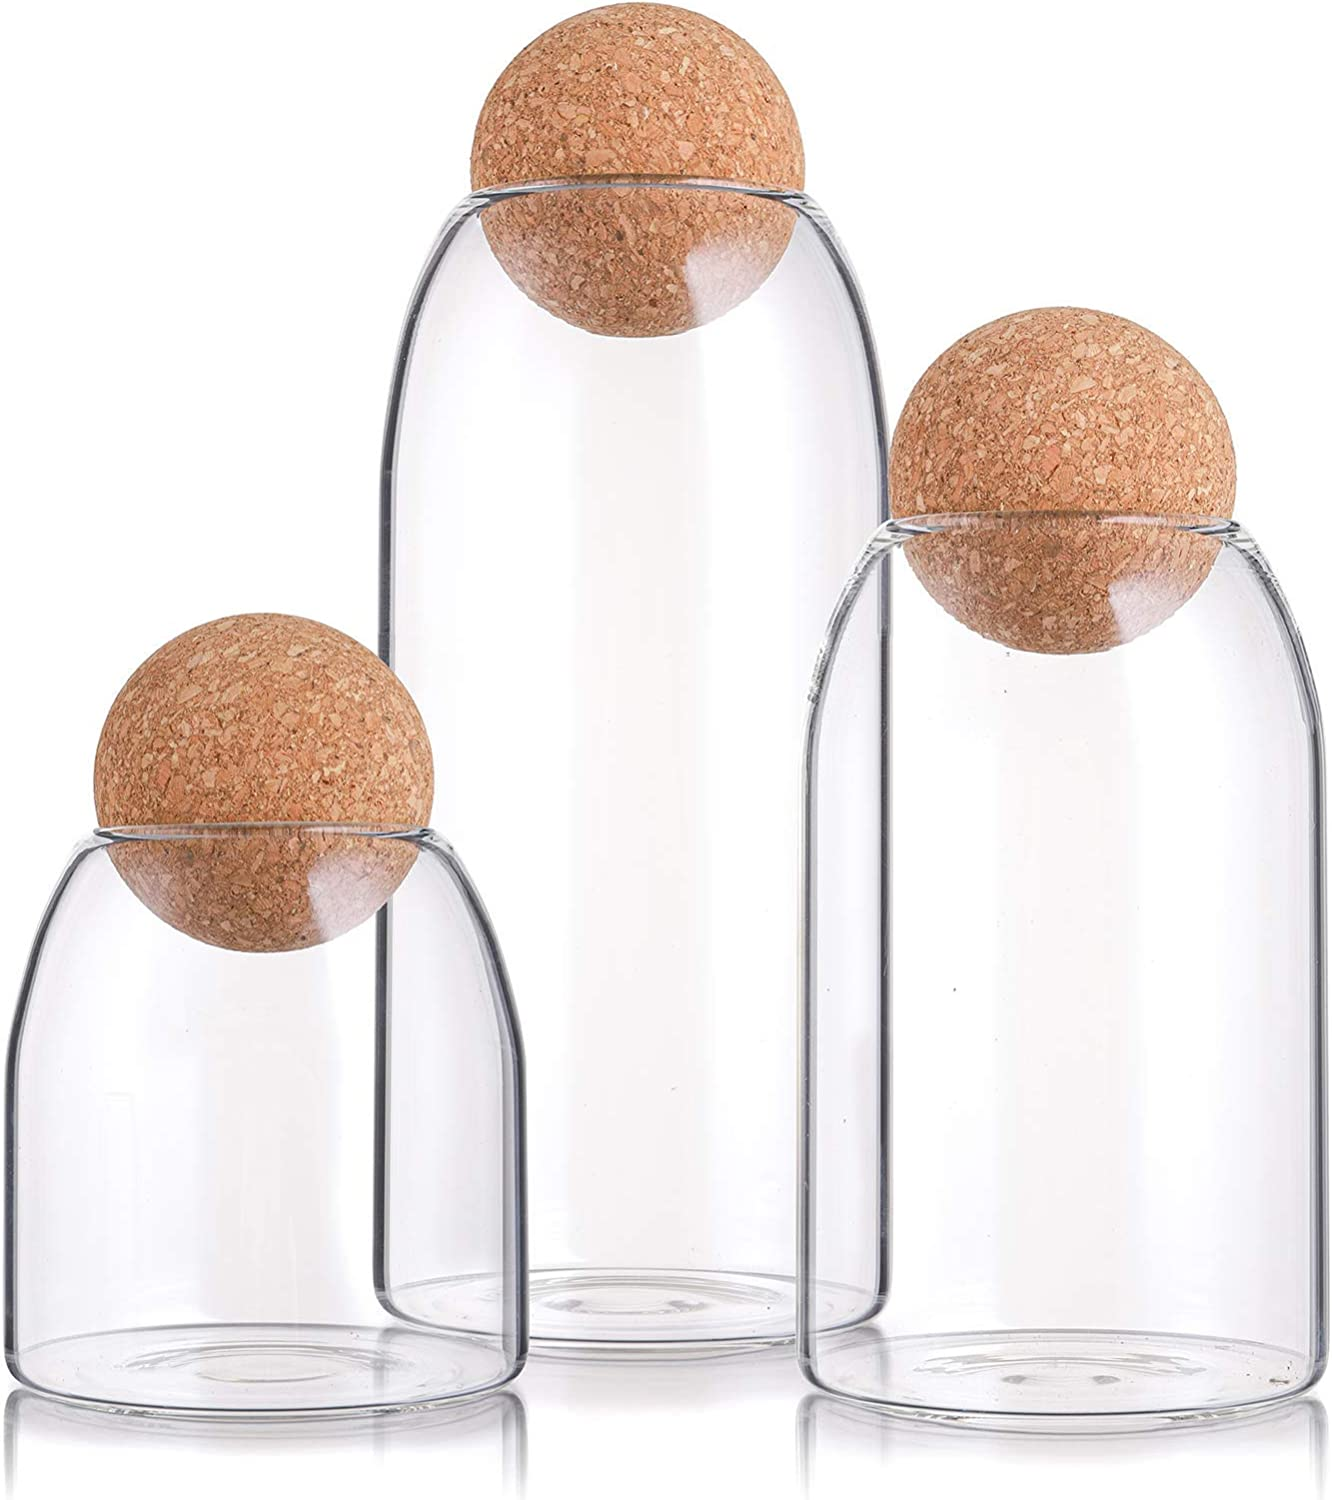 Suwimut 3 Pack Glass Jar with Airtight Seal Wood Lid Ball, Clear Candy Jar Mason Jars Food Storage Canister for Serving Spice Sugar Salt Tea Coffee, 500ML, 900ML, 1200ML